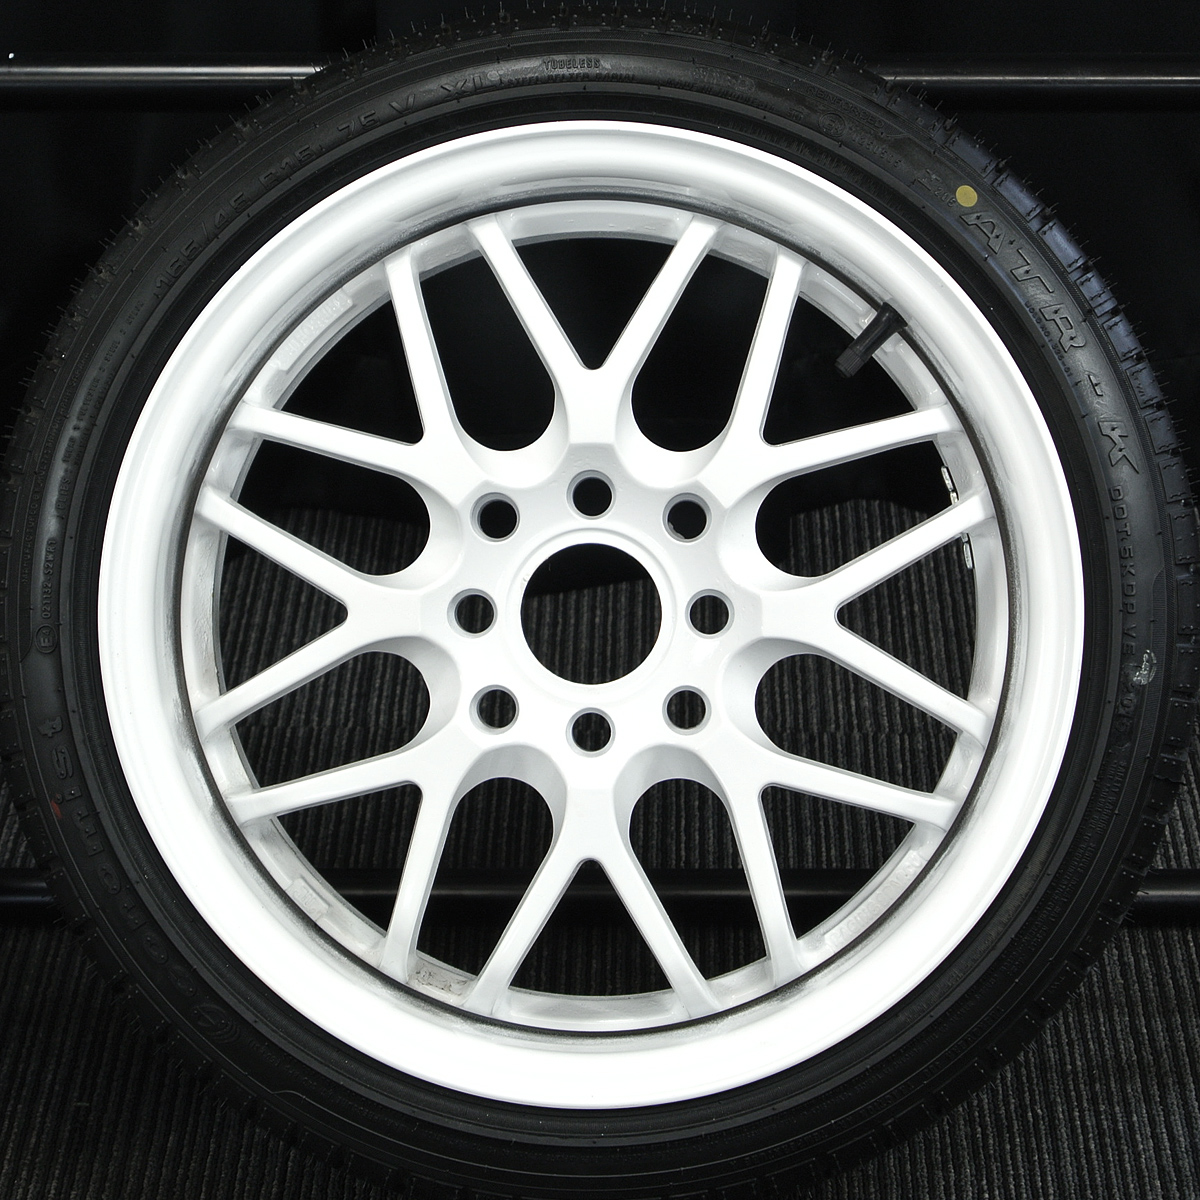 CRIMSON Racing SPARCO NS2 ホワイト ATR SPORT Economist ATR-K 165/45R15 4本SET